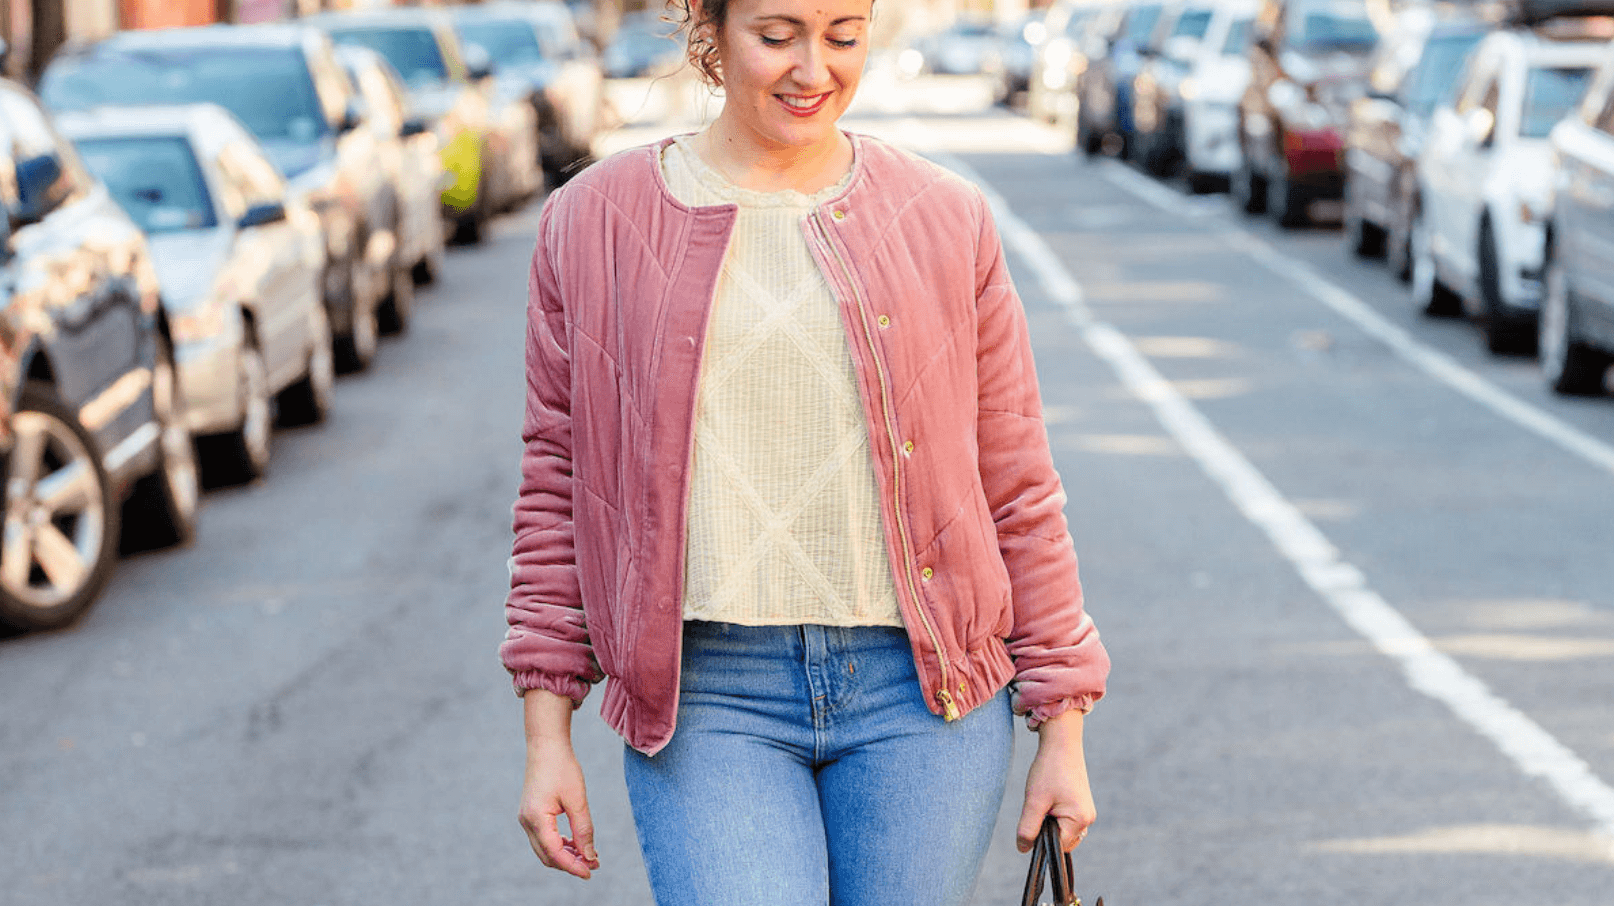 Sezane Bomber Jacket LoveshackFancy Top Madewell Jeans Coclico Booties Look. by Modnitsa Styling